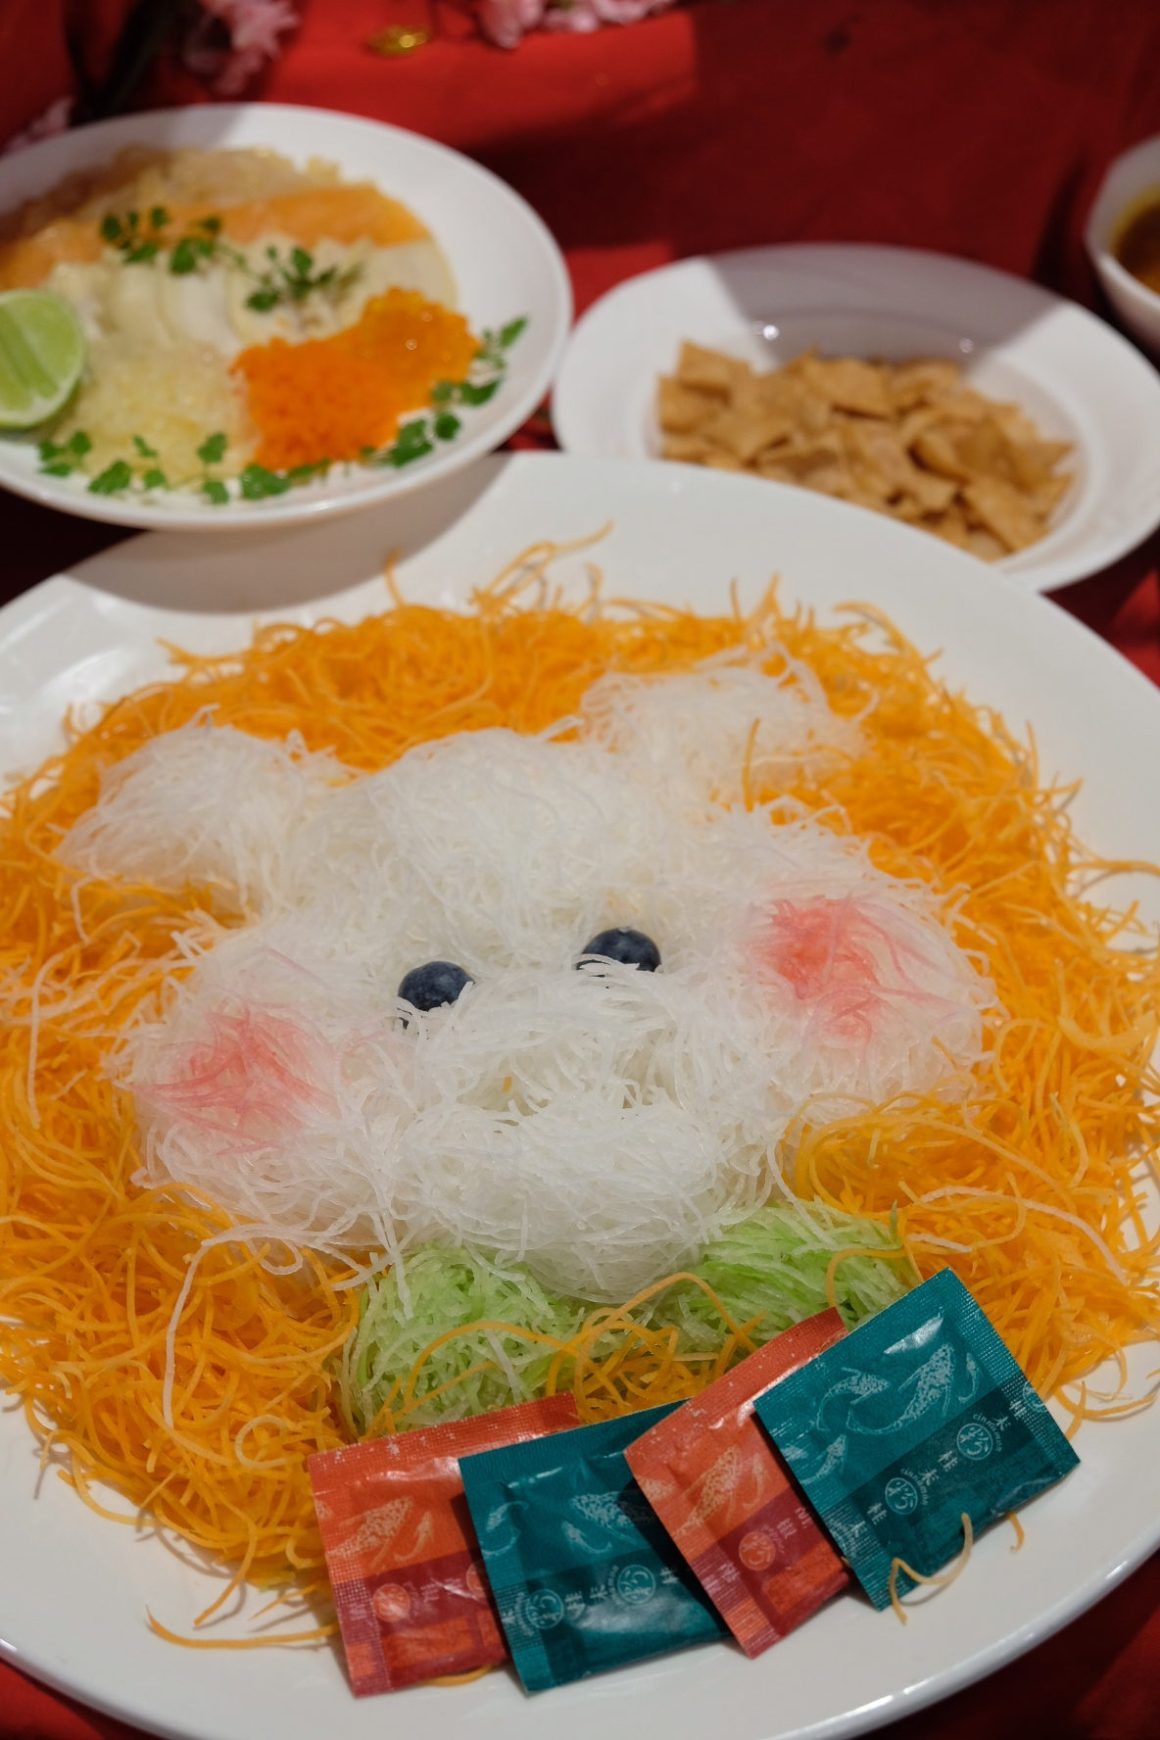 Best restaurants For Your Chinese New Year 2019 Reunion Dinner In Singapore - Amara Singapore, Prosperity Yusheng